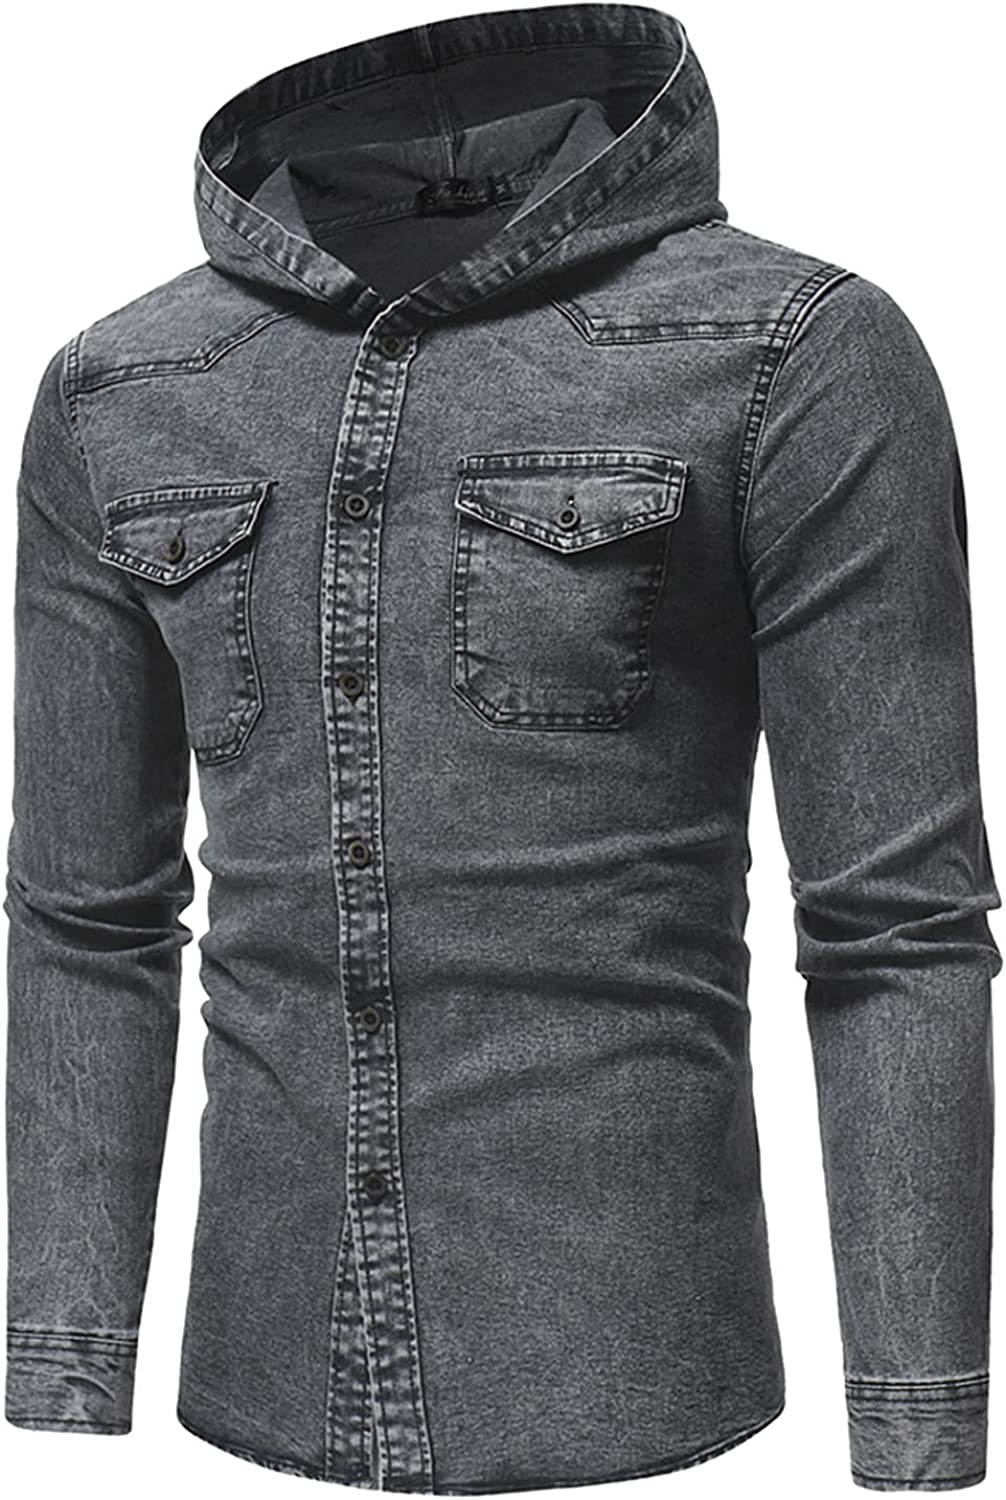 HONGJ Denim Lightweight Jackets Shirts for Mens, Fall Fashion Button Down Casual Hooded Washed Work Shirt with Pockets